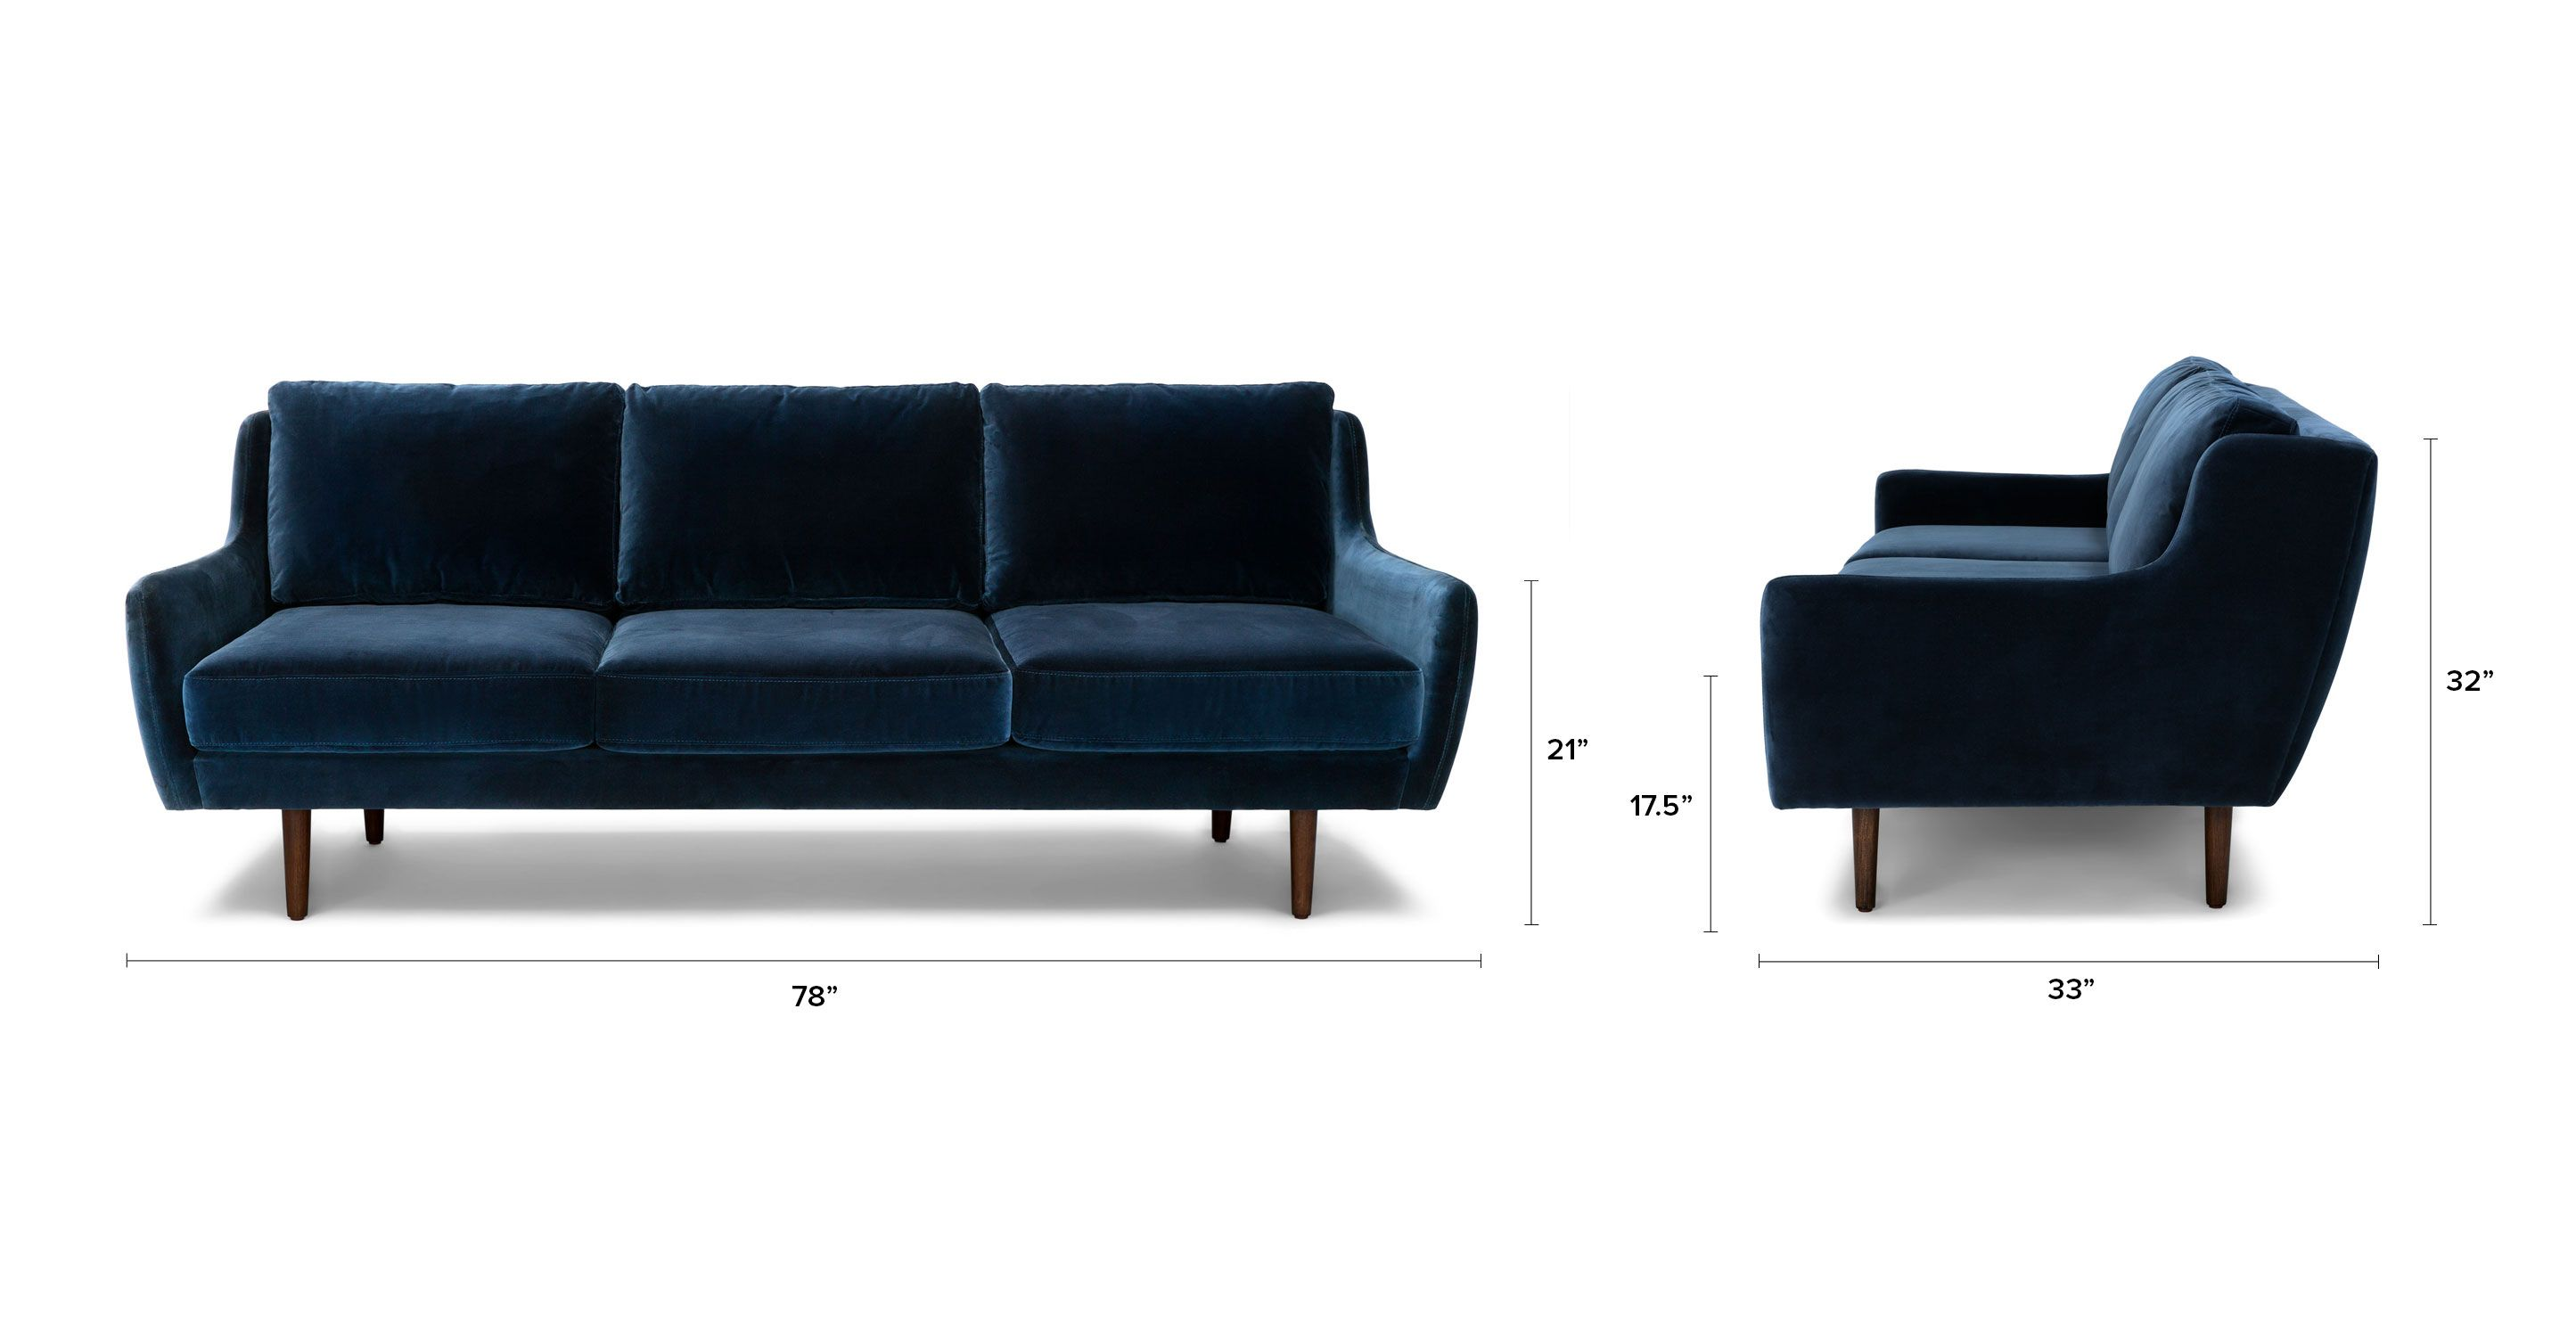 Matrix Cascadia Blue Sofa - Sofas - Article | Modern, Mid ... on Cascadia Outdoor Living Spaces id=14012